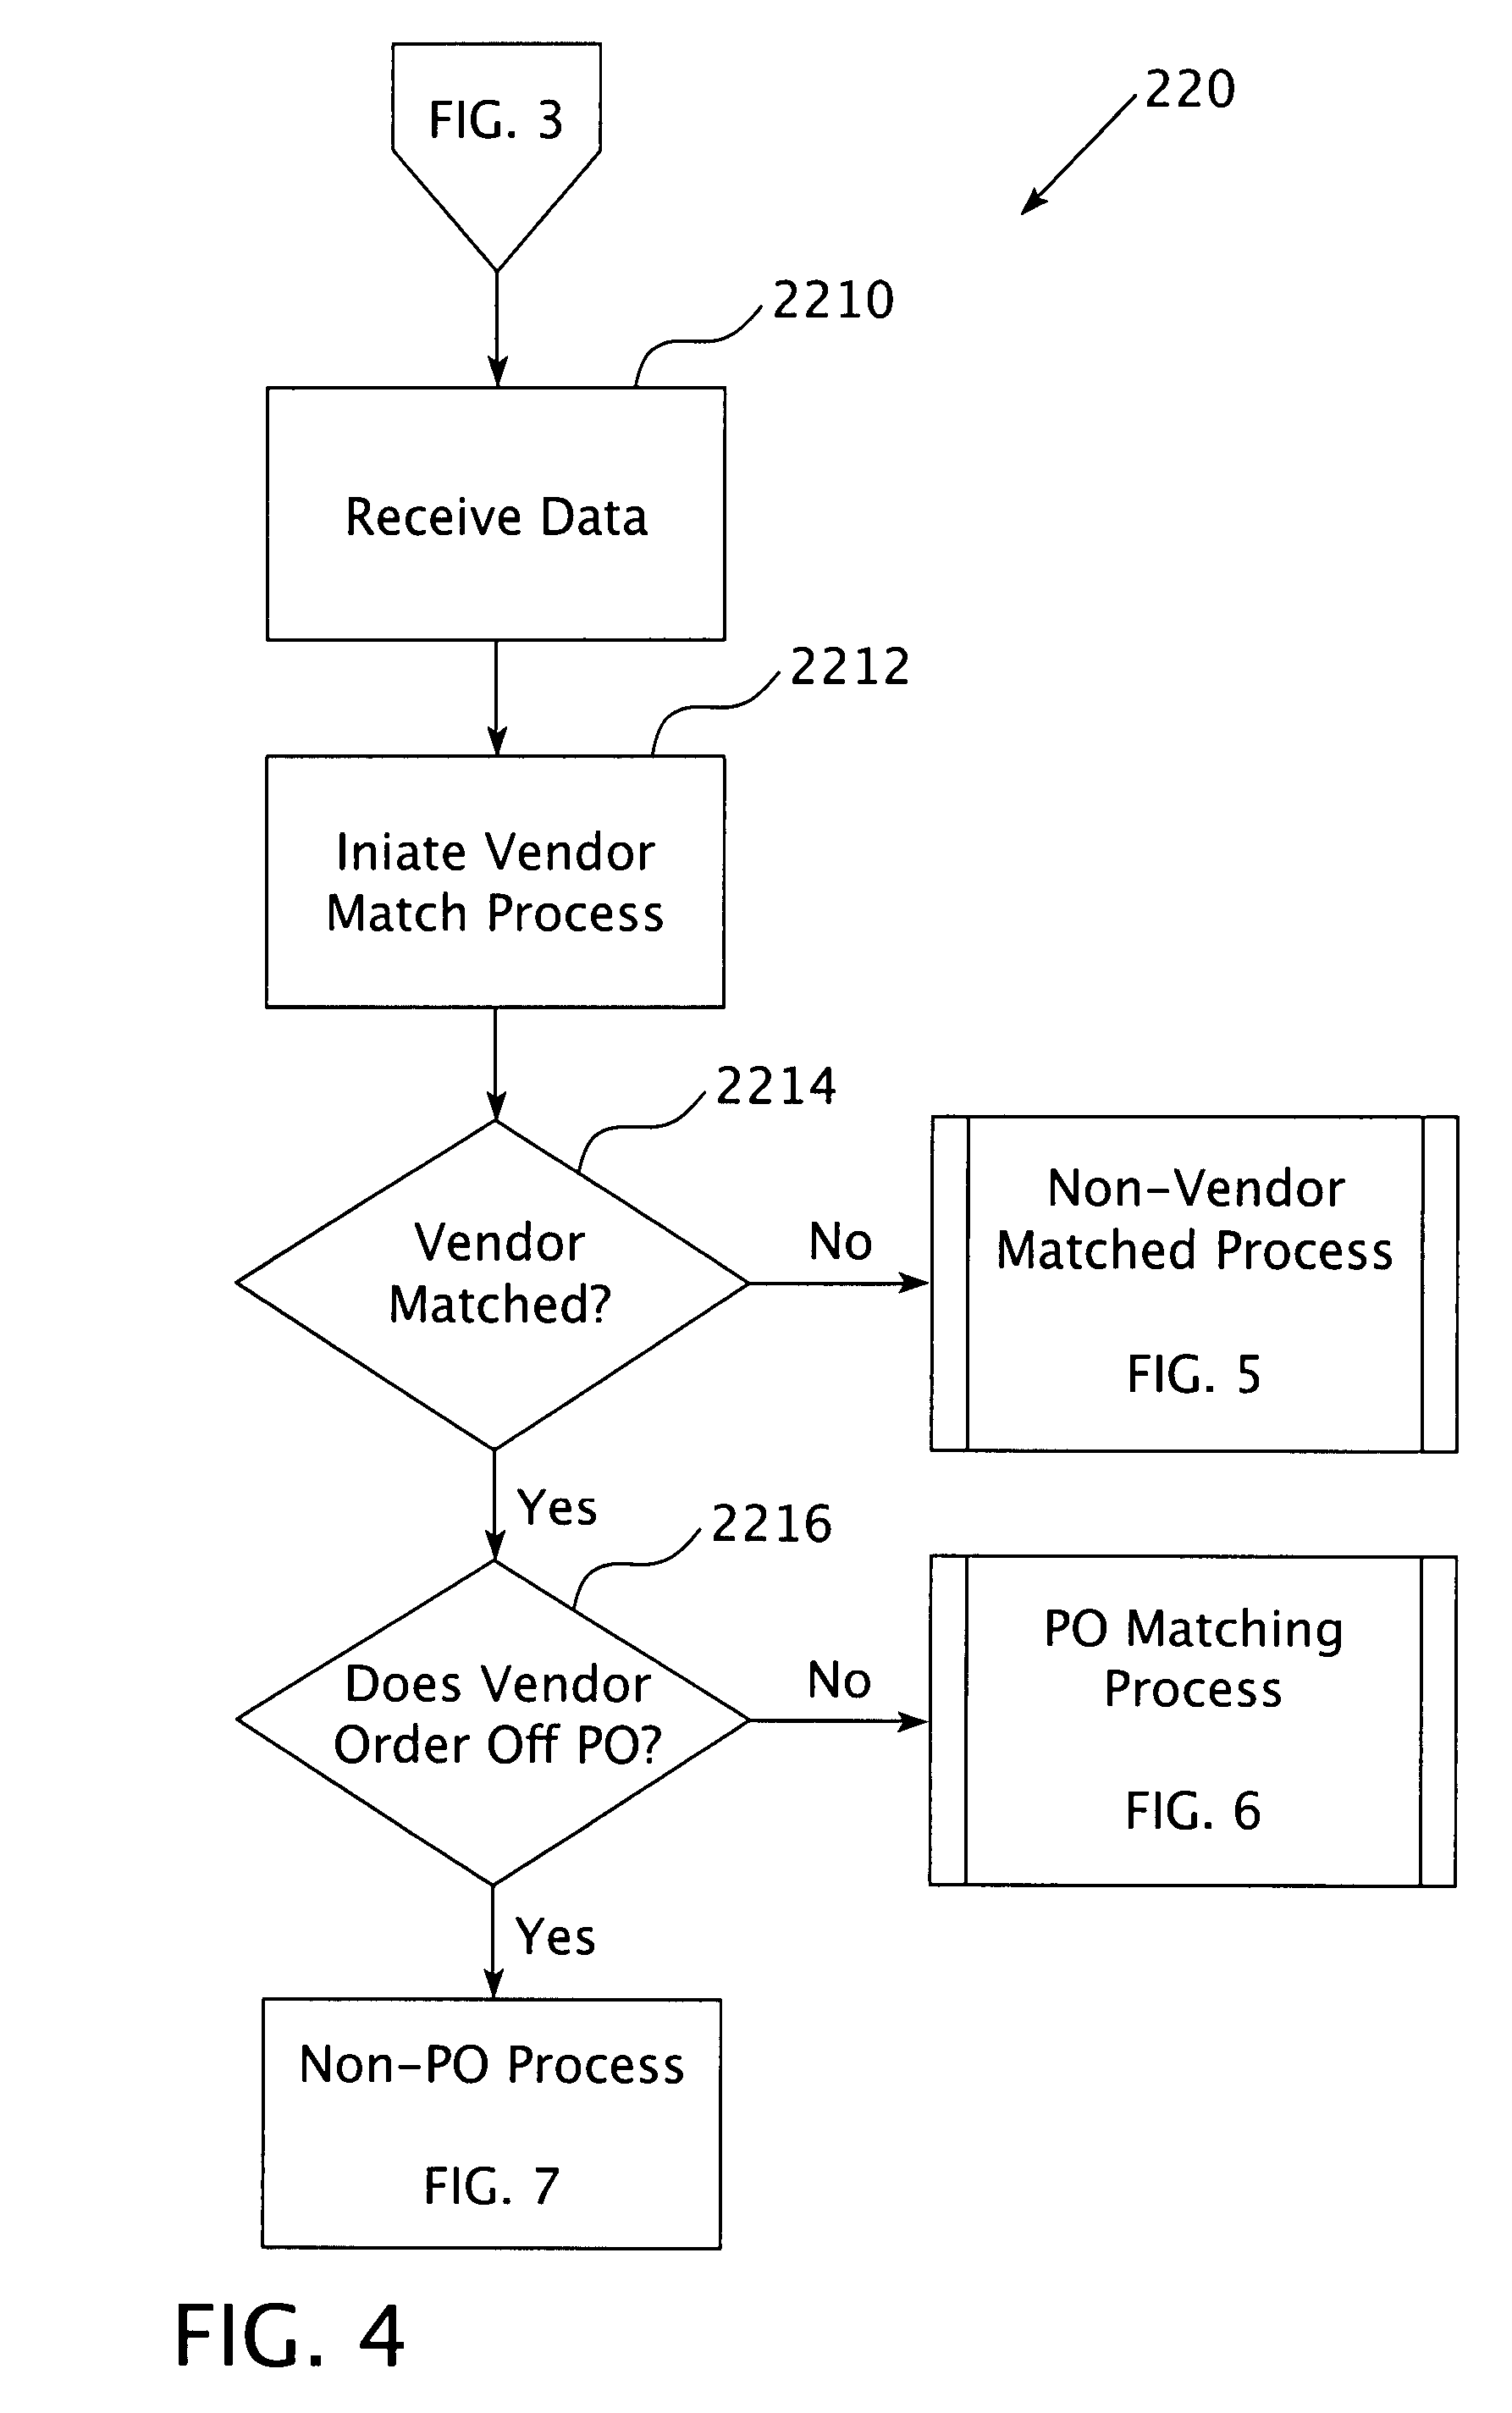 Making An Invoice In Excel Excel Patent Us  Accounts Payable Process  Google Patentsuche Accounts Payable Invoice Automation with Invoice Terms Example Excel Patent Drawing Make A Fake Receipt Pdf